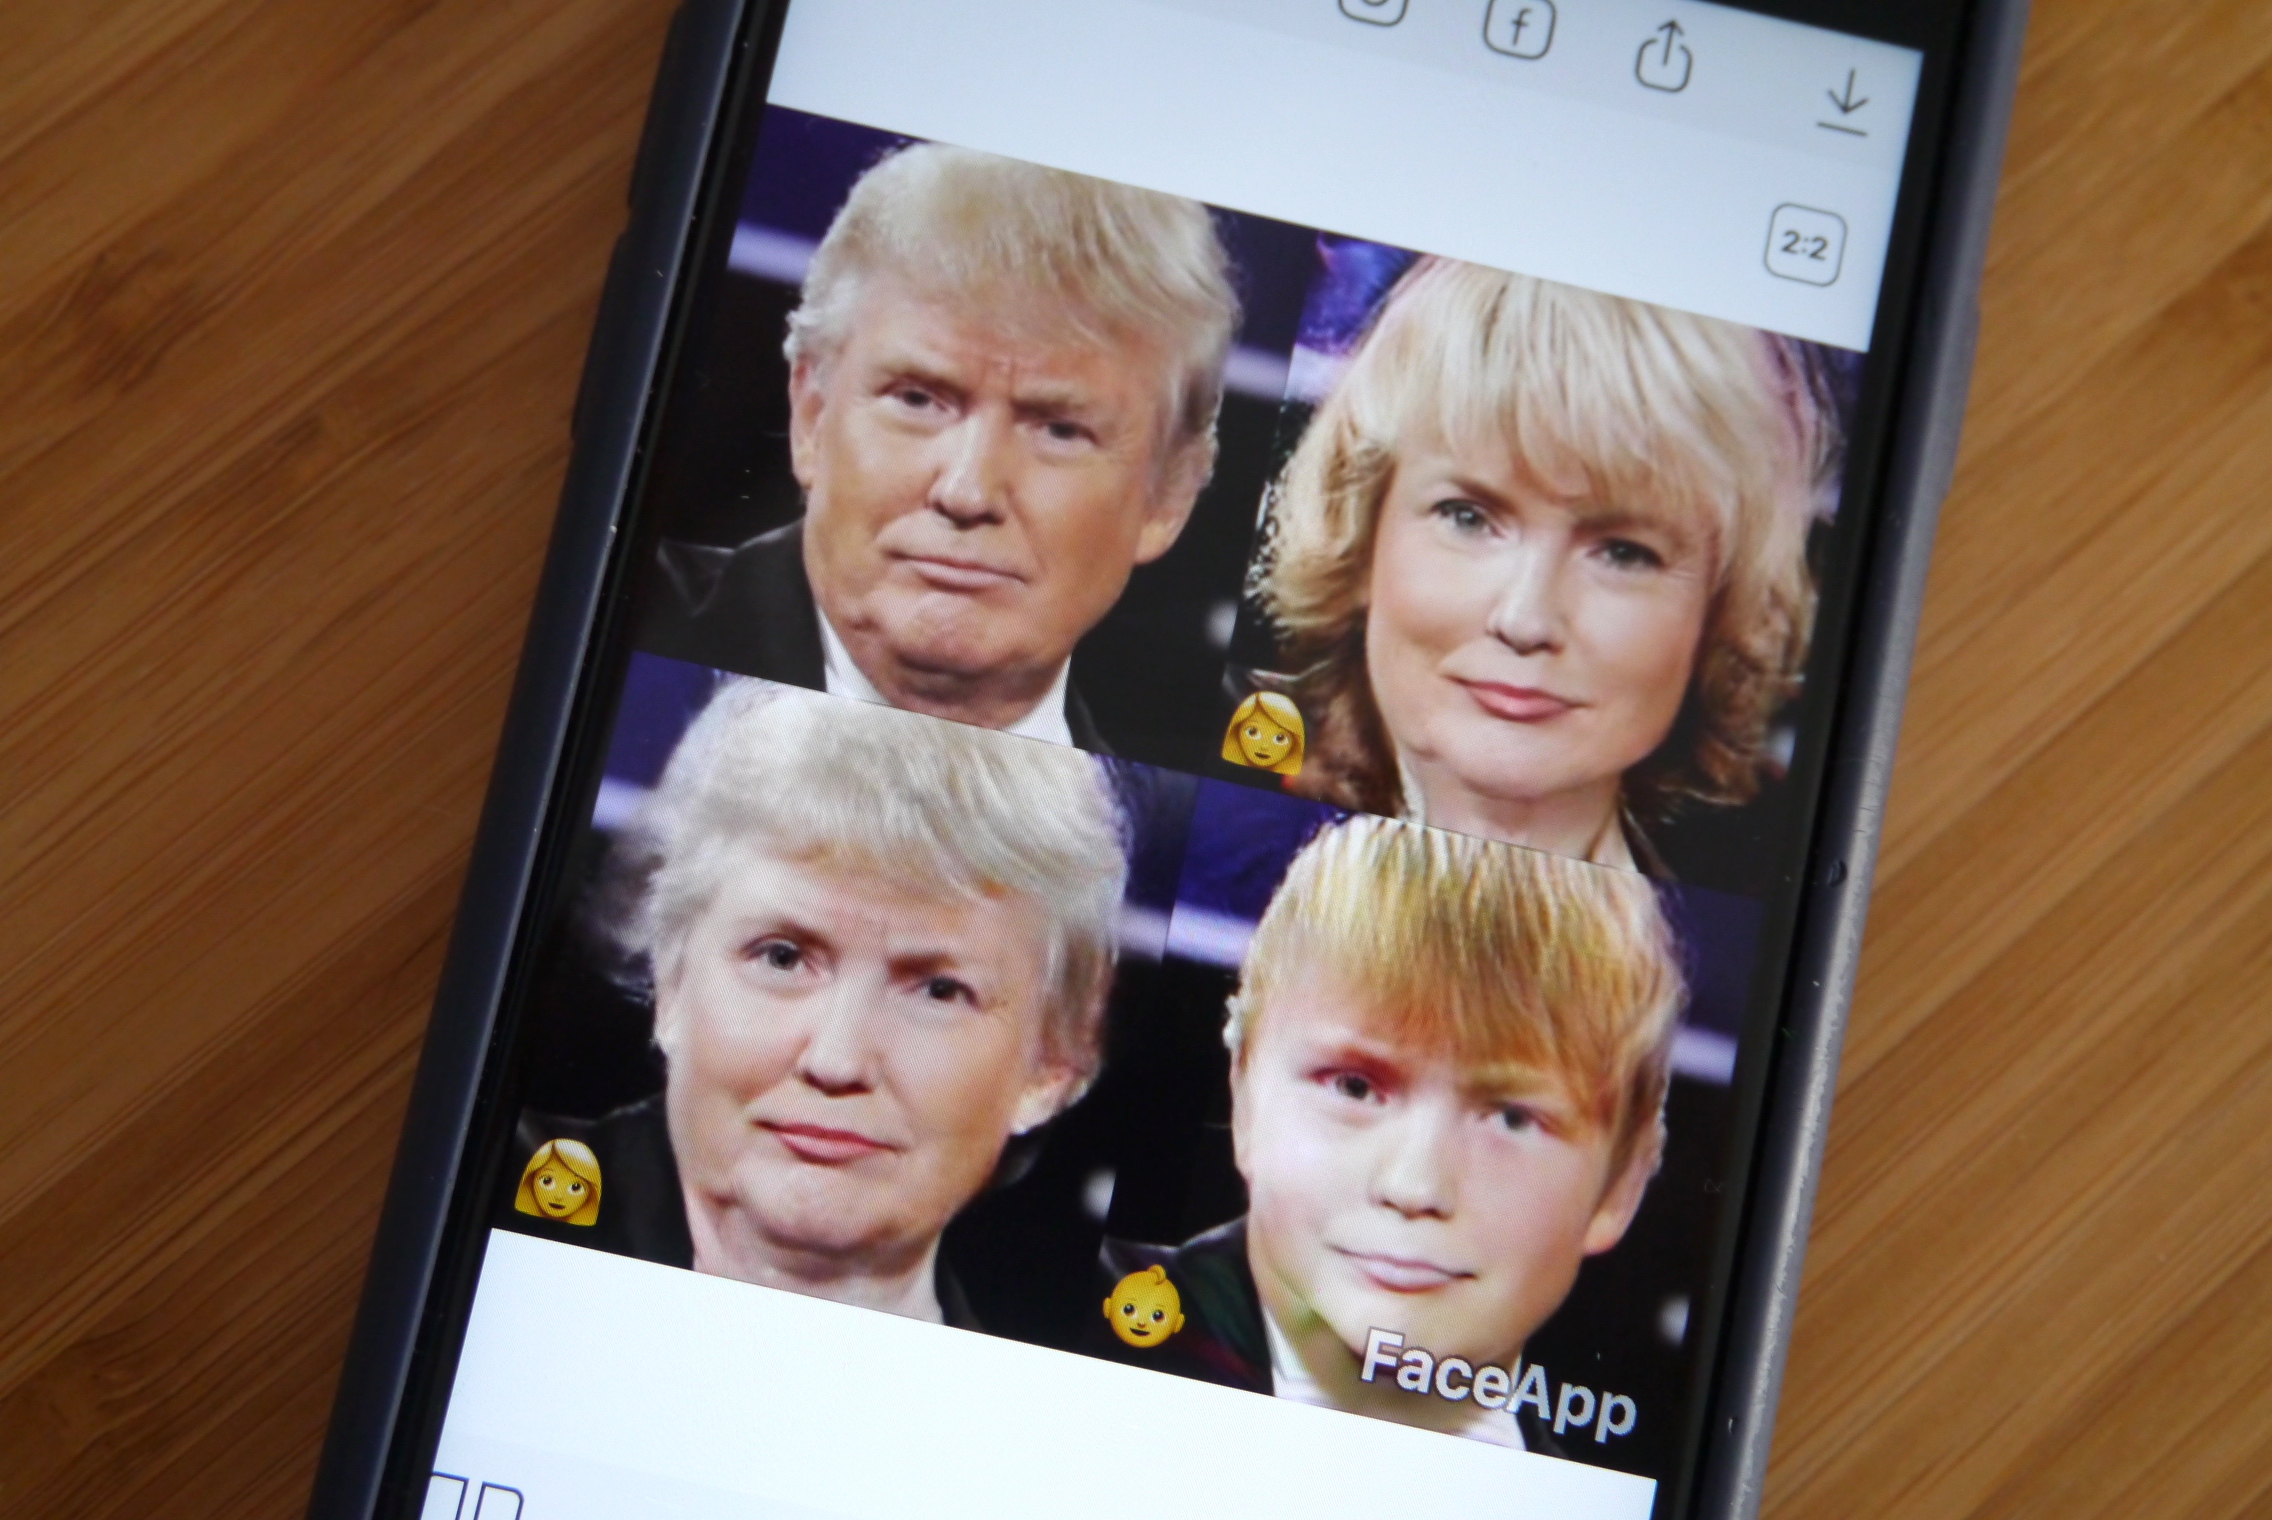 AI photo editor FaceApp goes viral again on iOS, raises questions